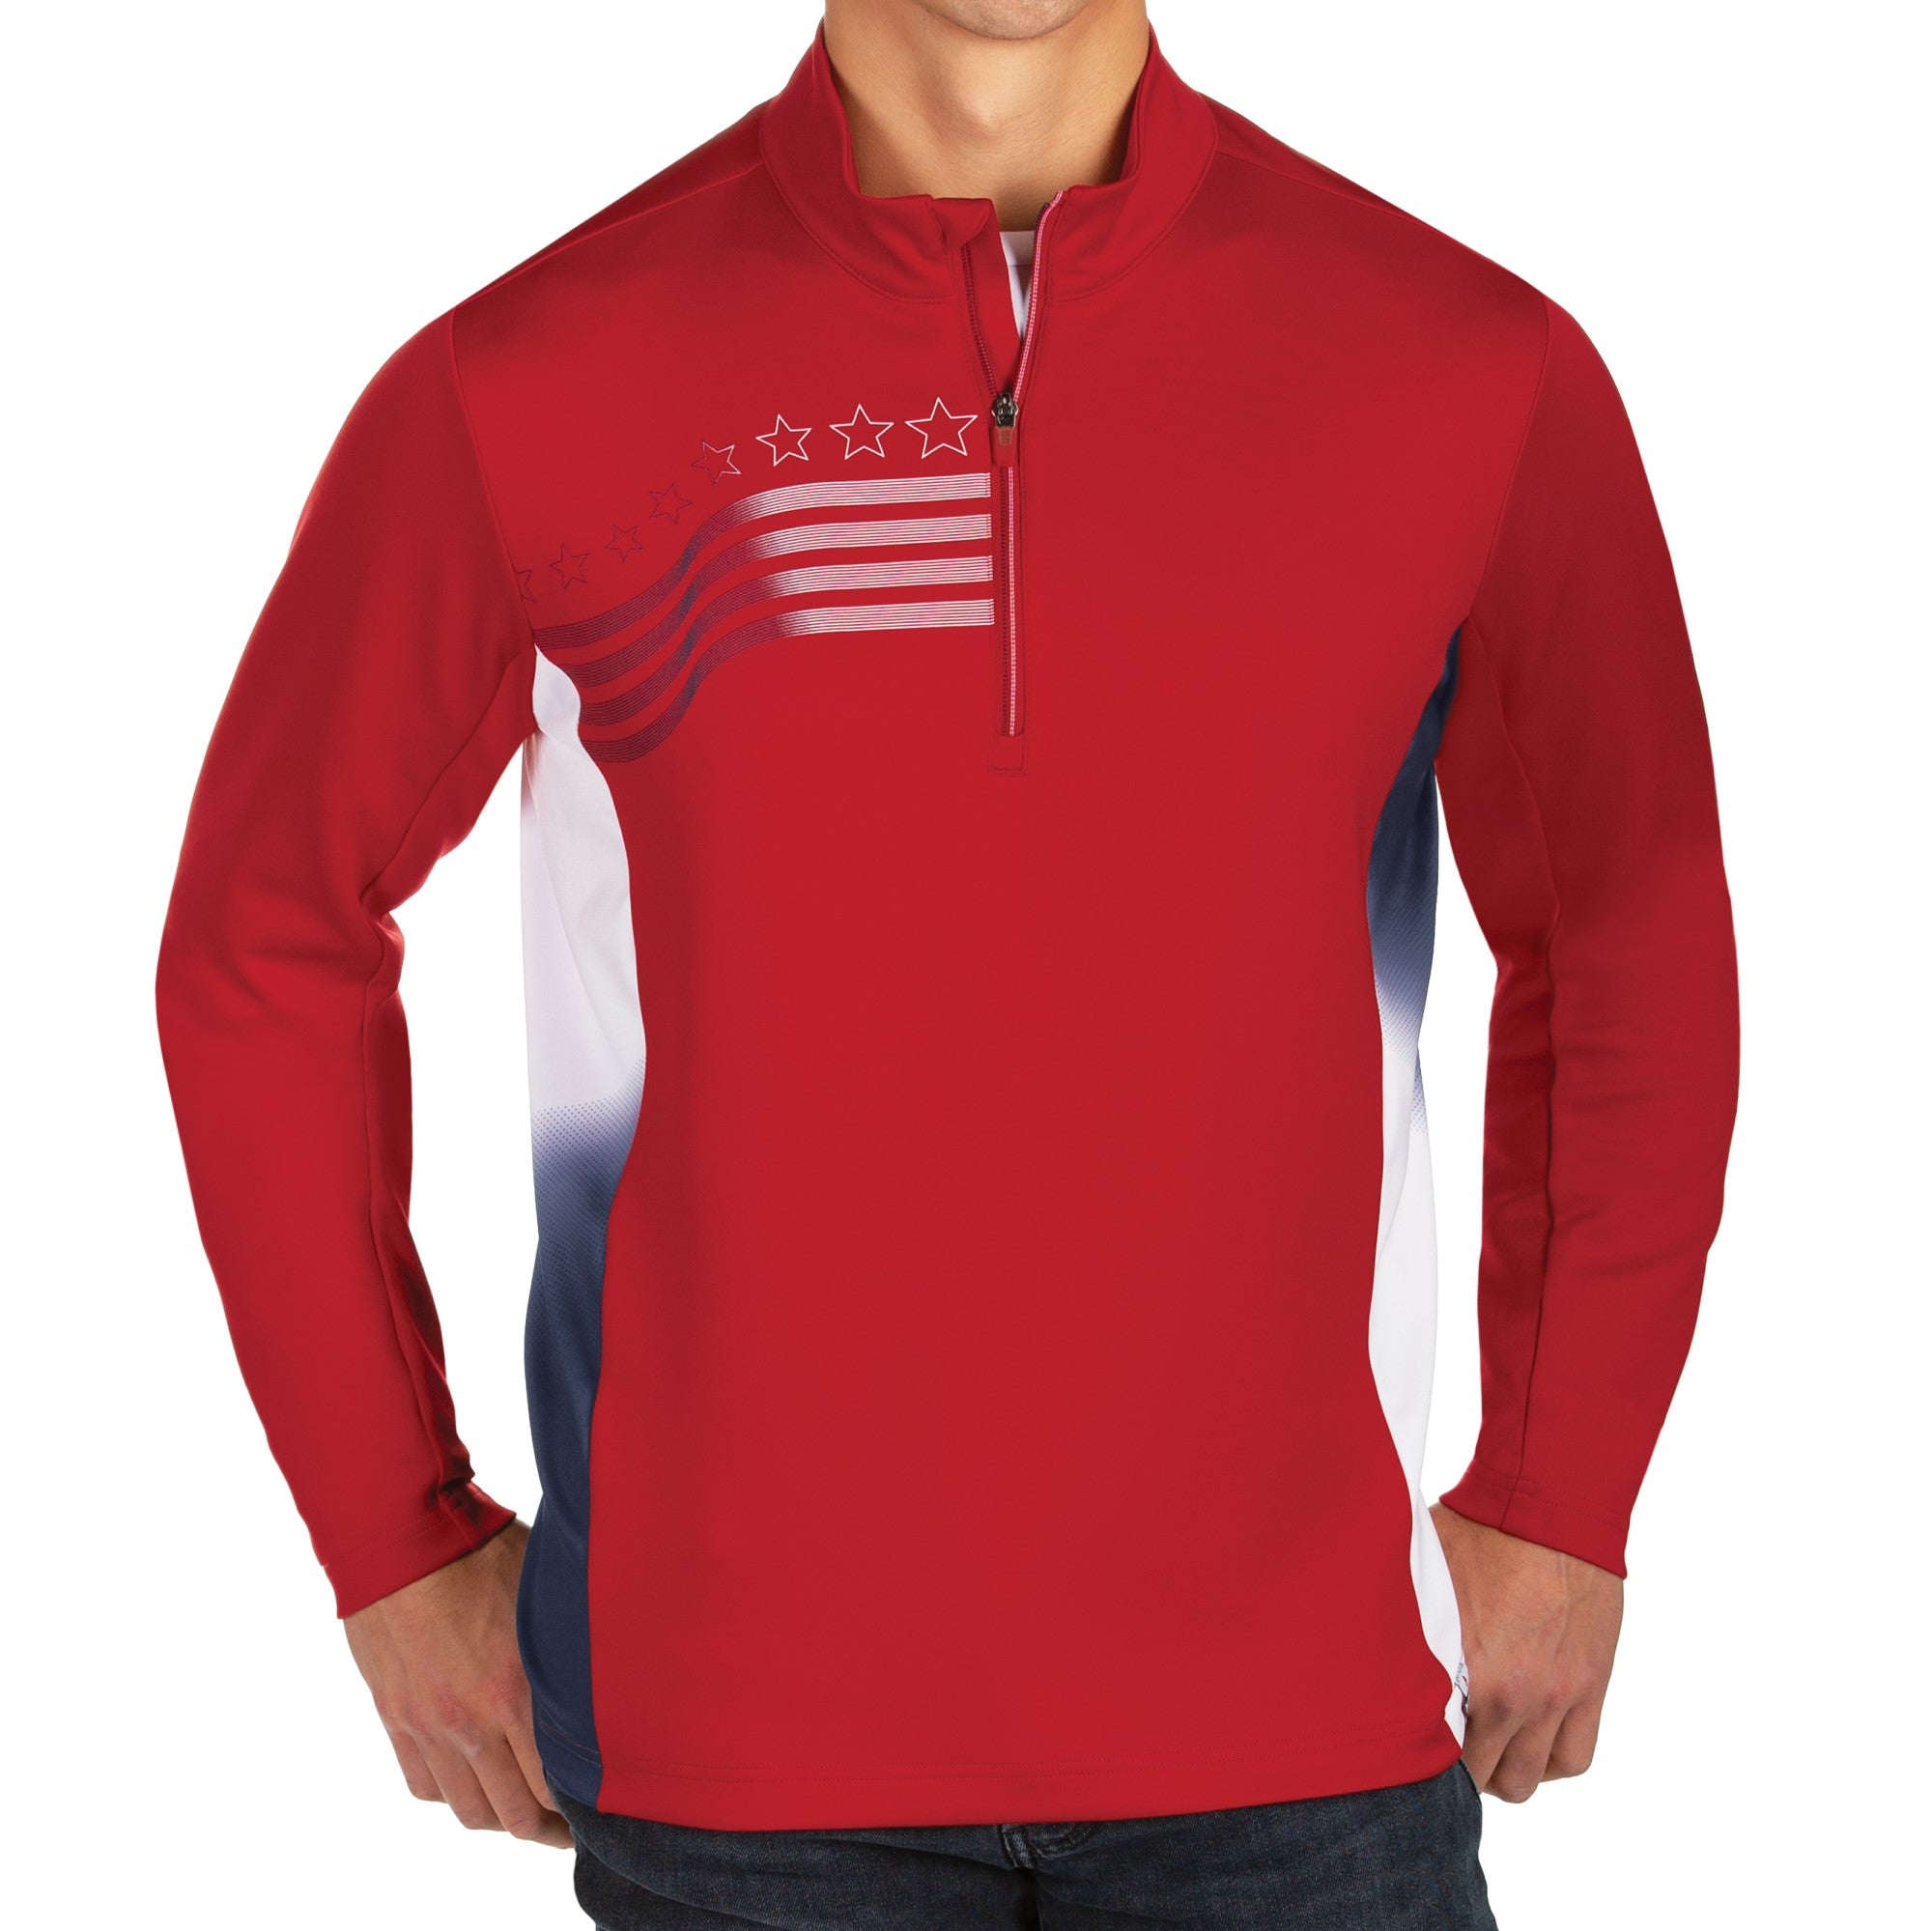 Men's Liberty 1/4 Zip Performance Golf Shirt - the flag shirt